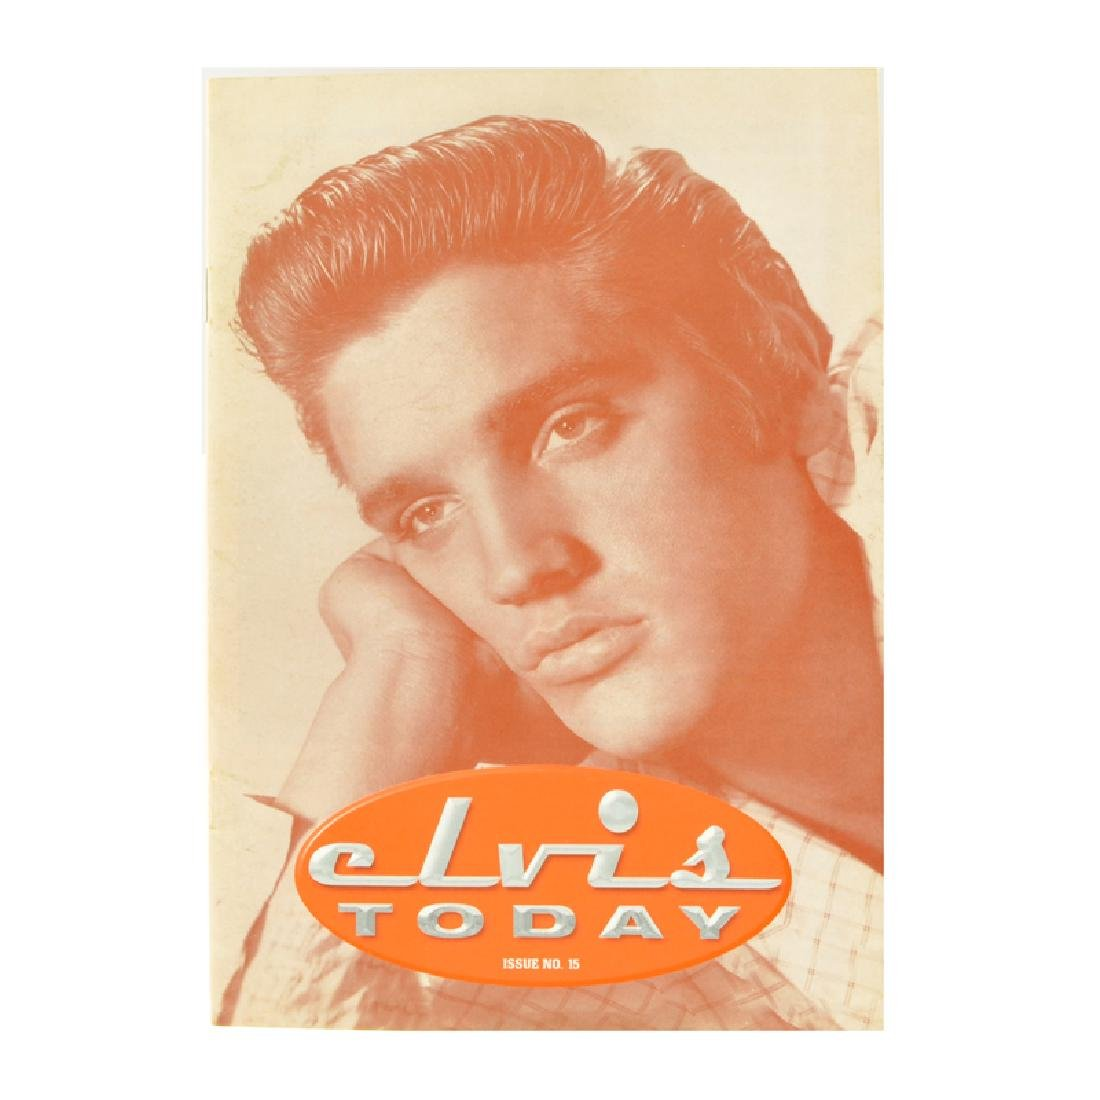 The Official Elvis Presley Magazine: Elvis Today Issue